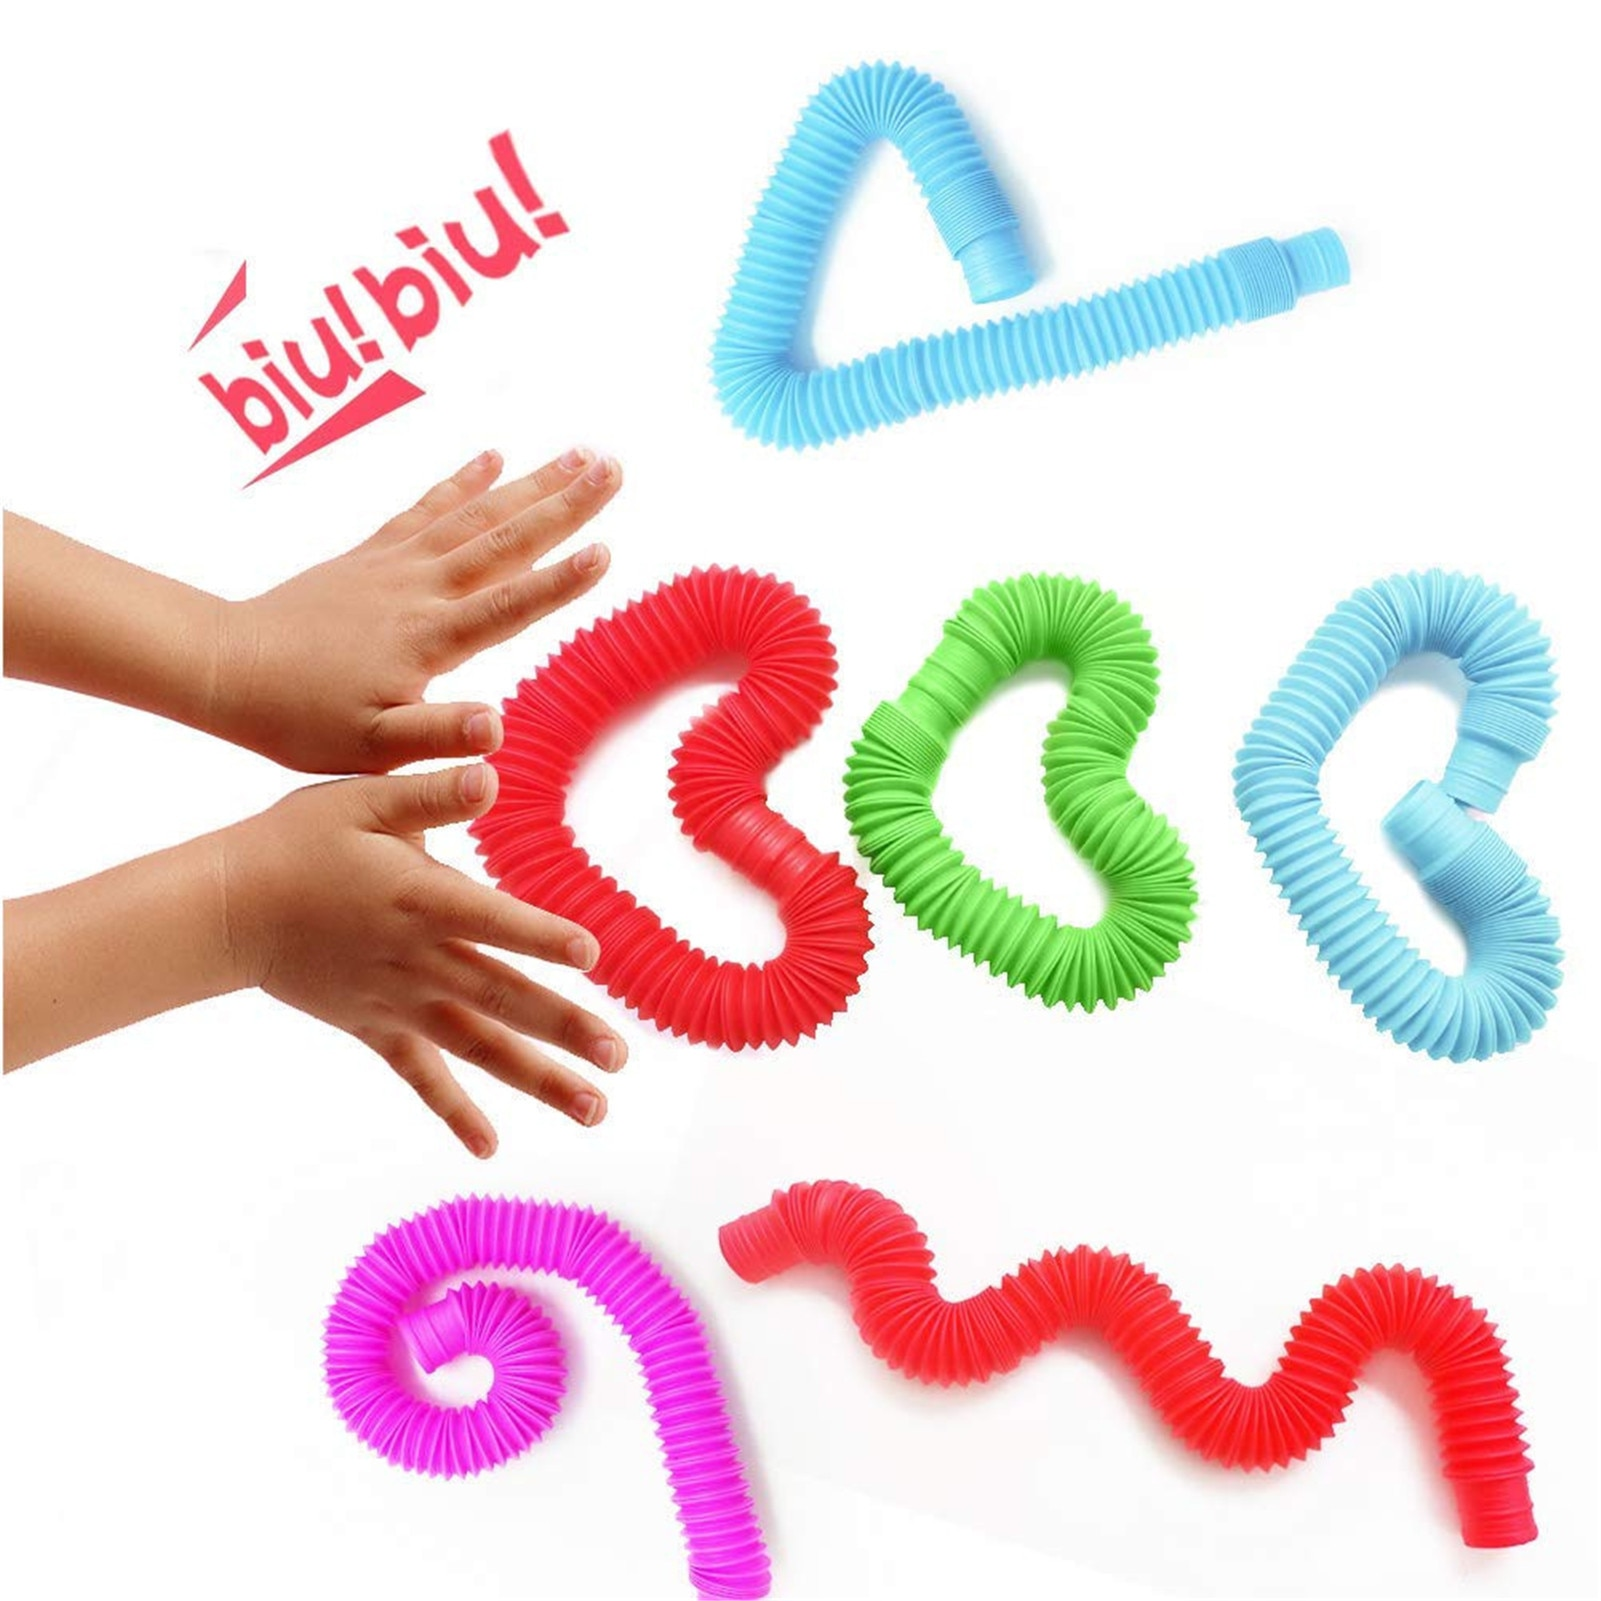 Fidget Pop Tube Toys Pipe Sensory Toys For Stress And Anxiety Relief Cool Bendable Multi-Color Stimming Toys For Kids enlarge